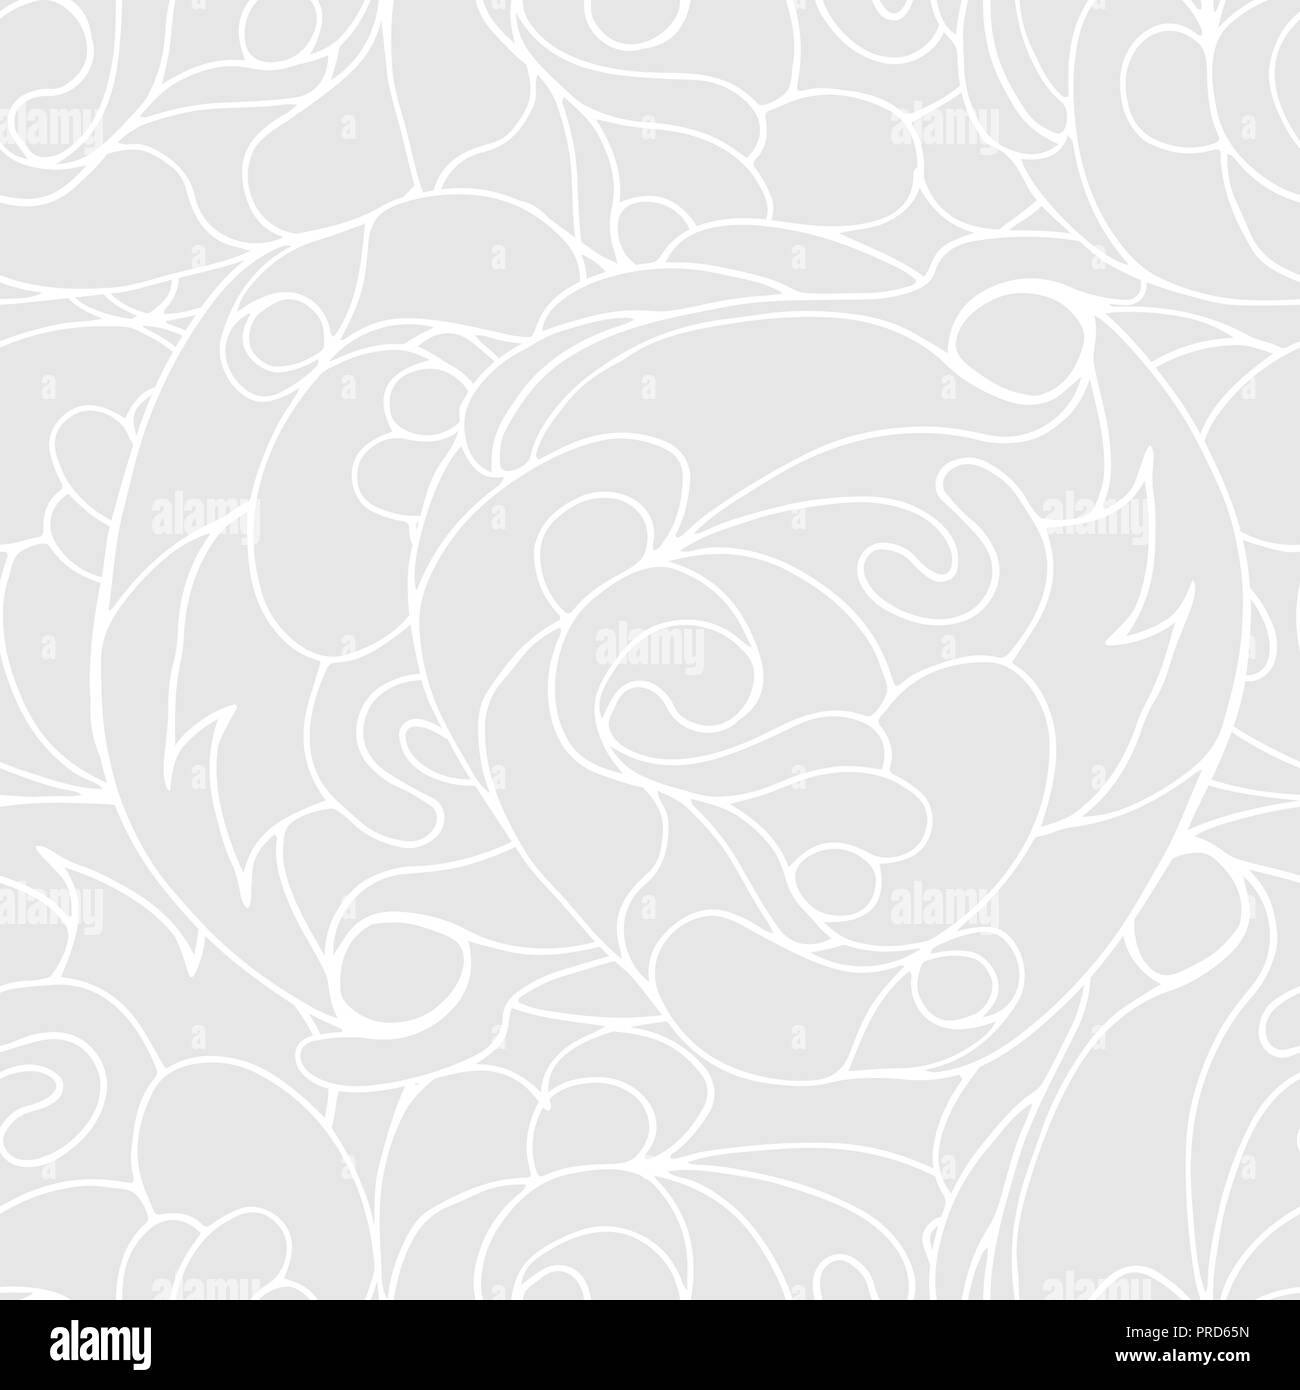 Abstract light gray colors composition - Stock Image